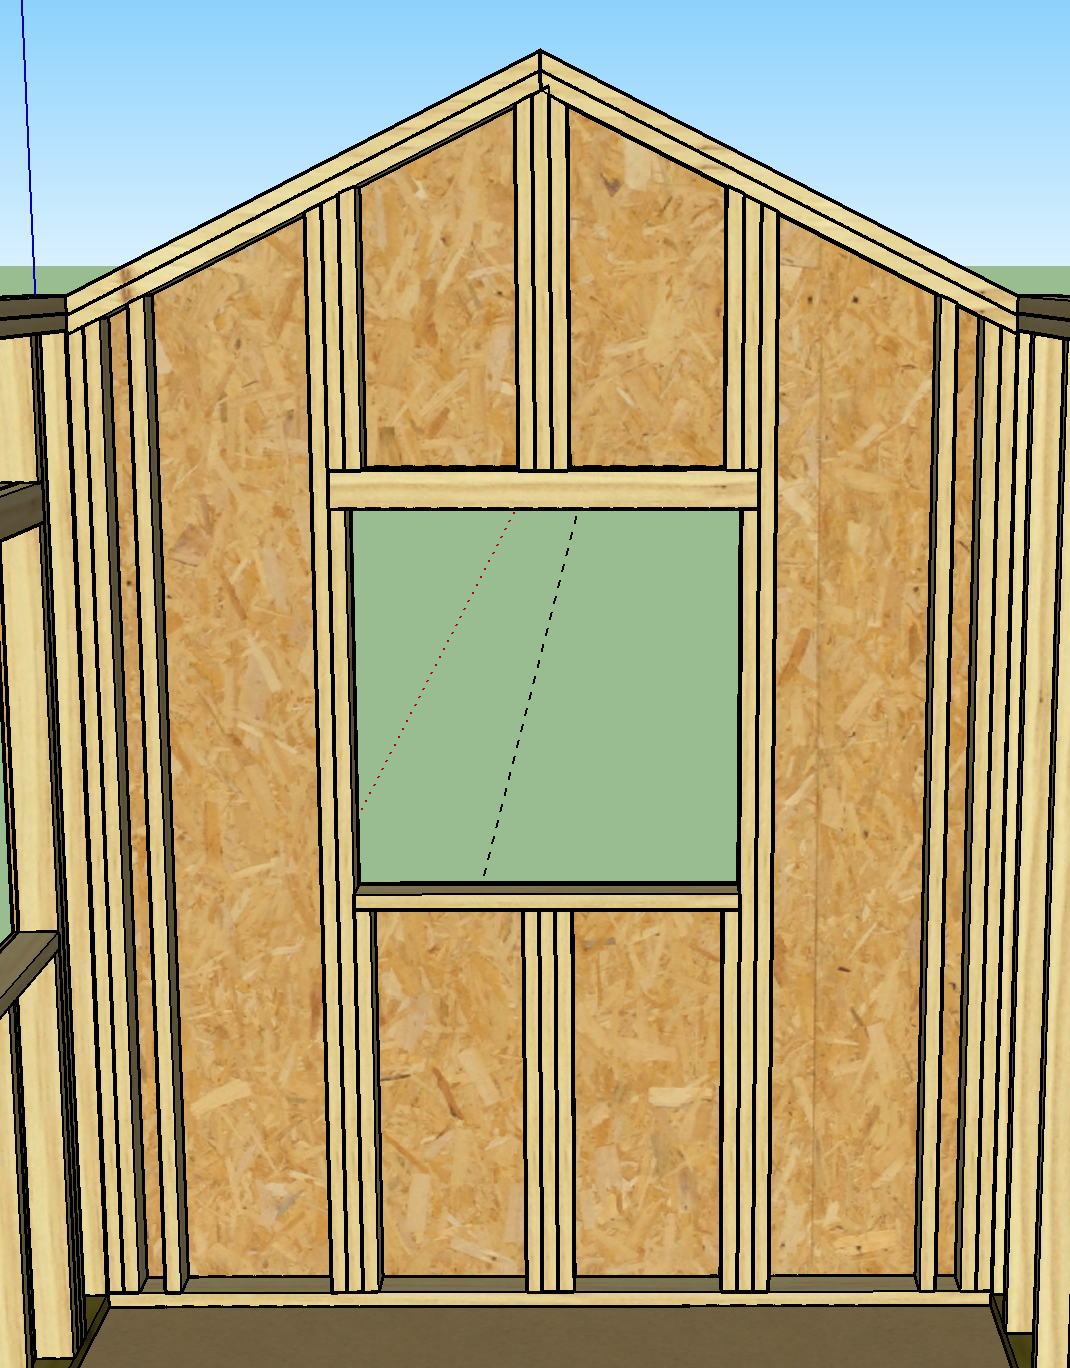 Desired gable wall framing